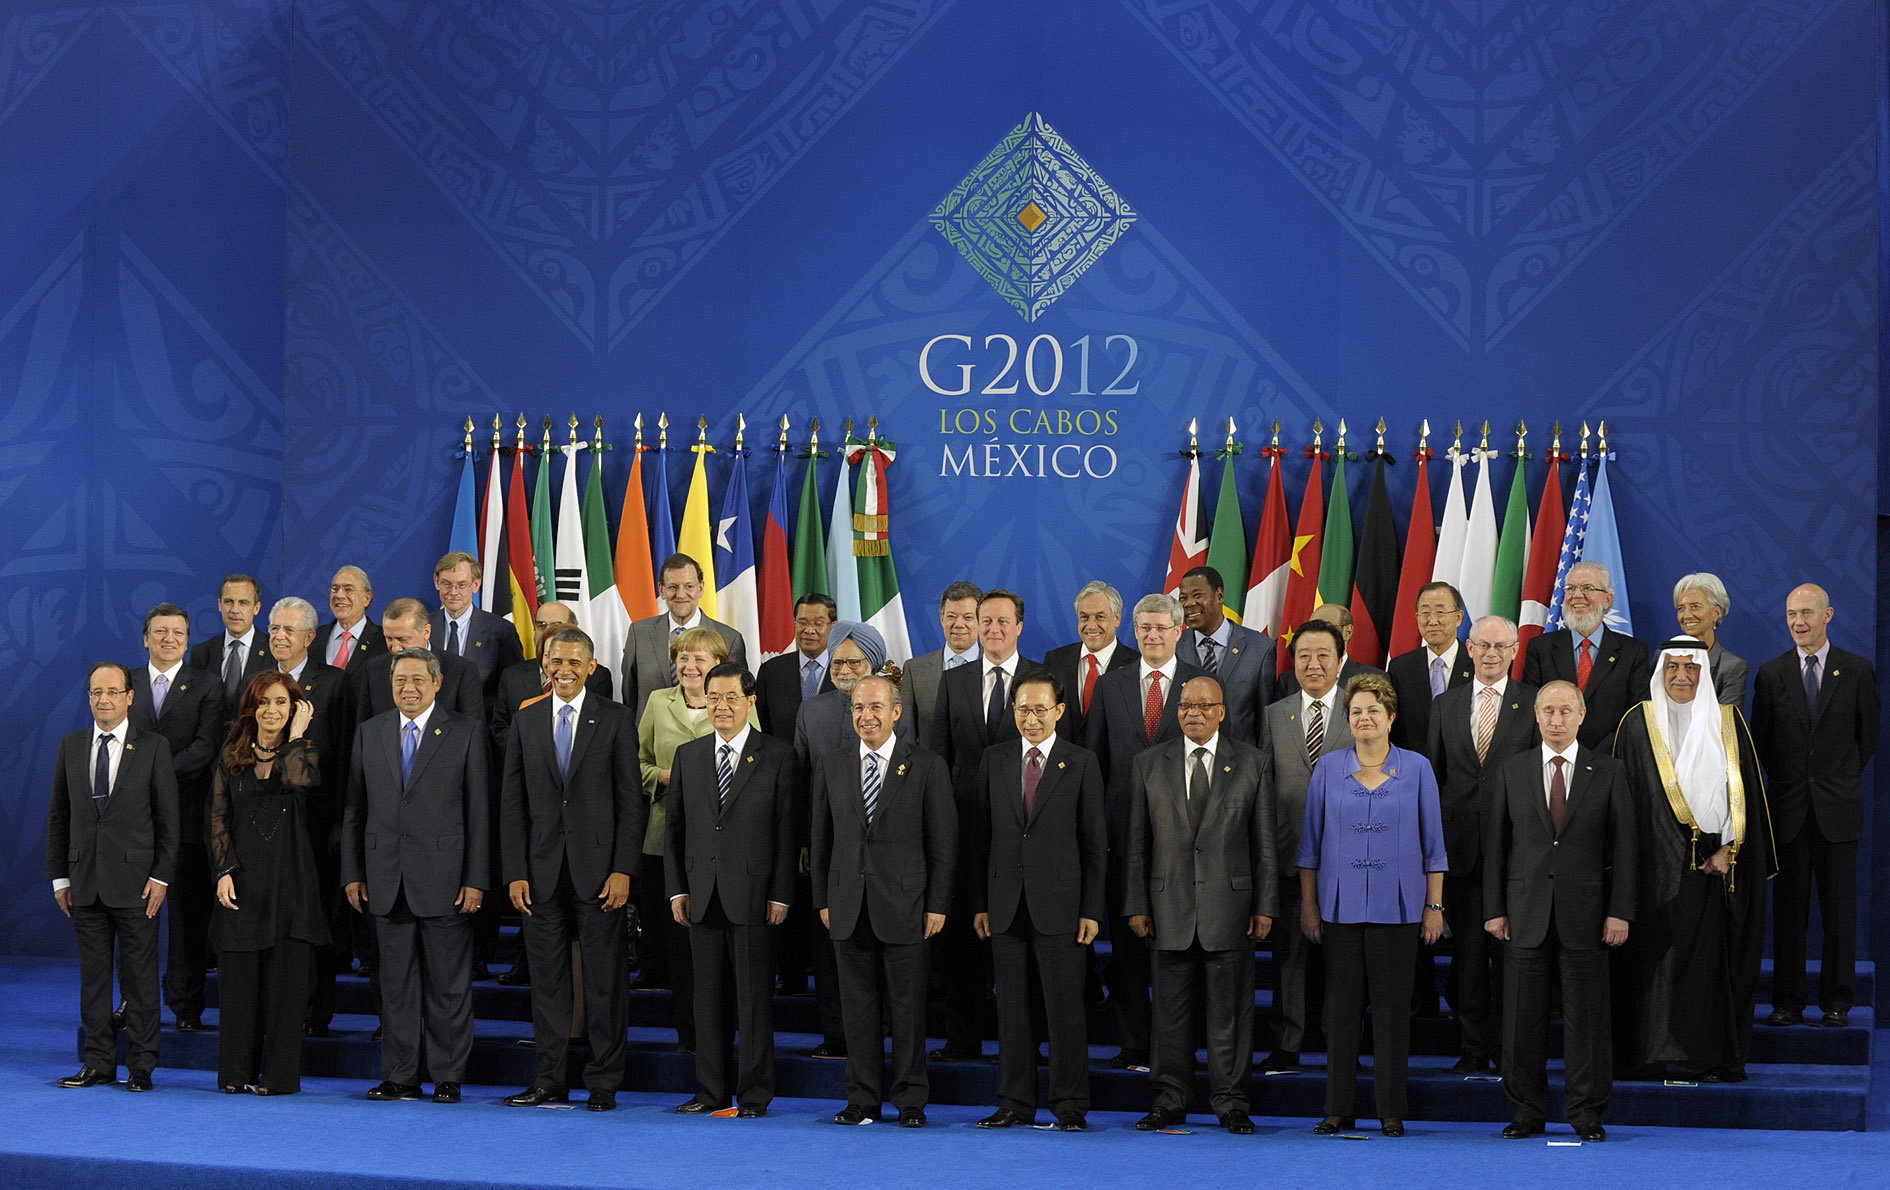 2012 G-20 Mexico summit group photo. Gobierno de Chile / Flickr.